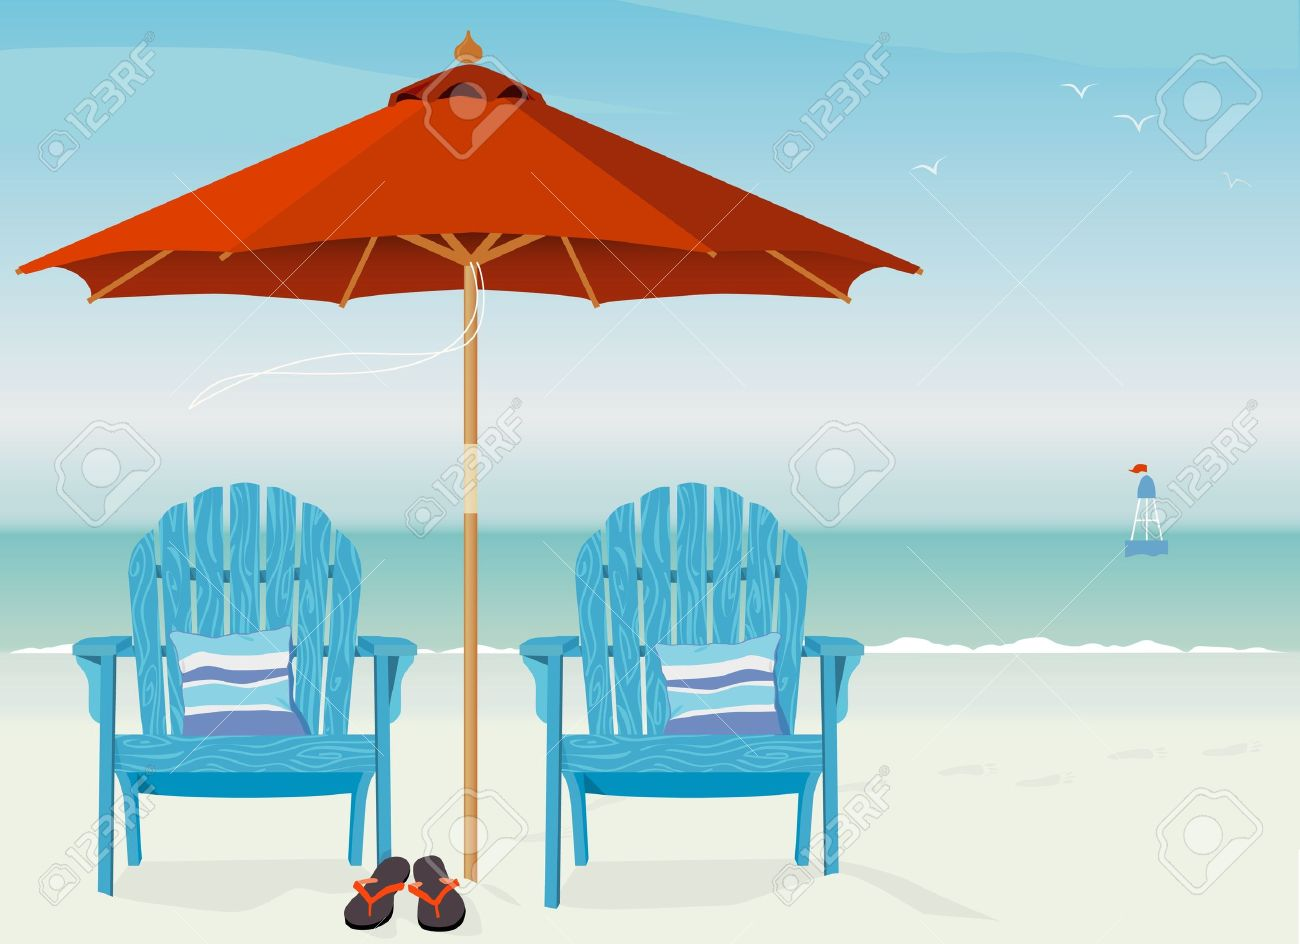 Adirondack Chairs At Beach Relaxing Scene On A Breezy Day At The Beach  Stock Vector